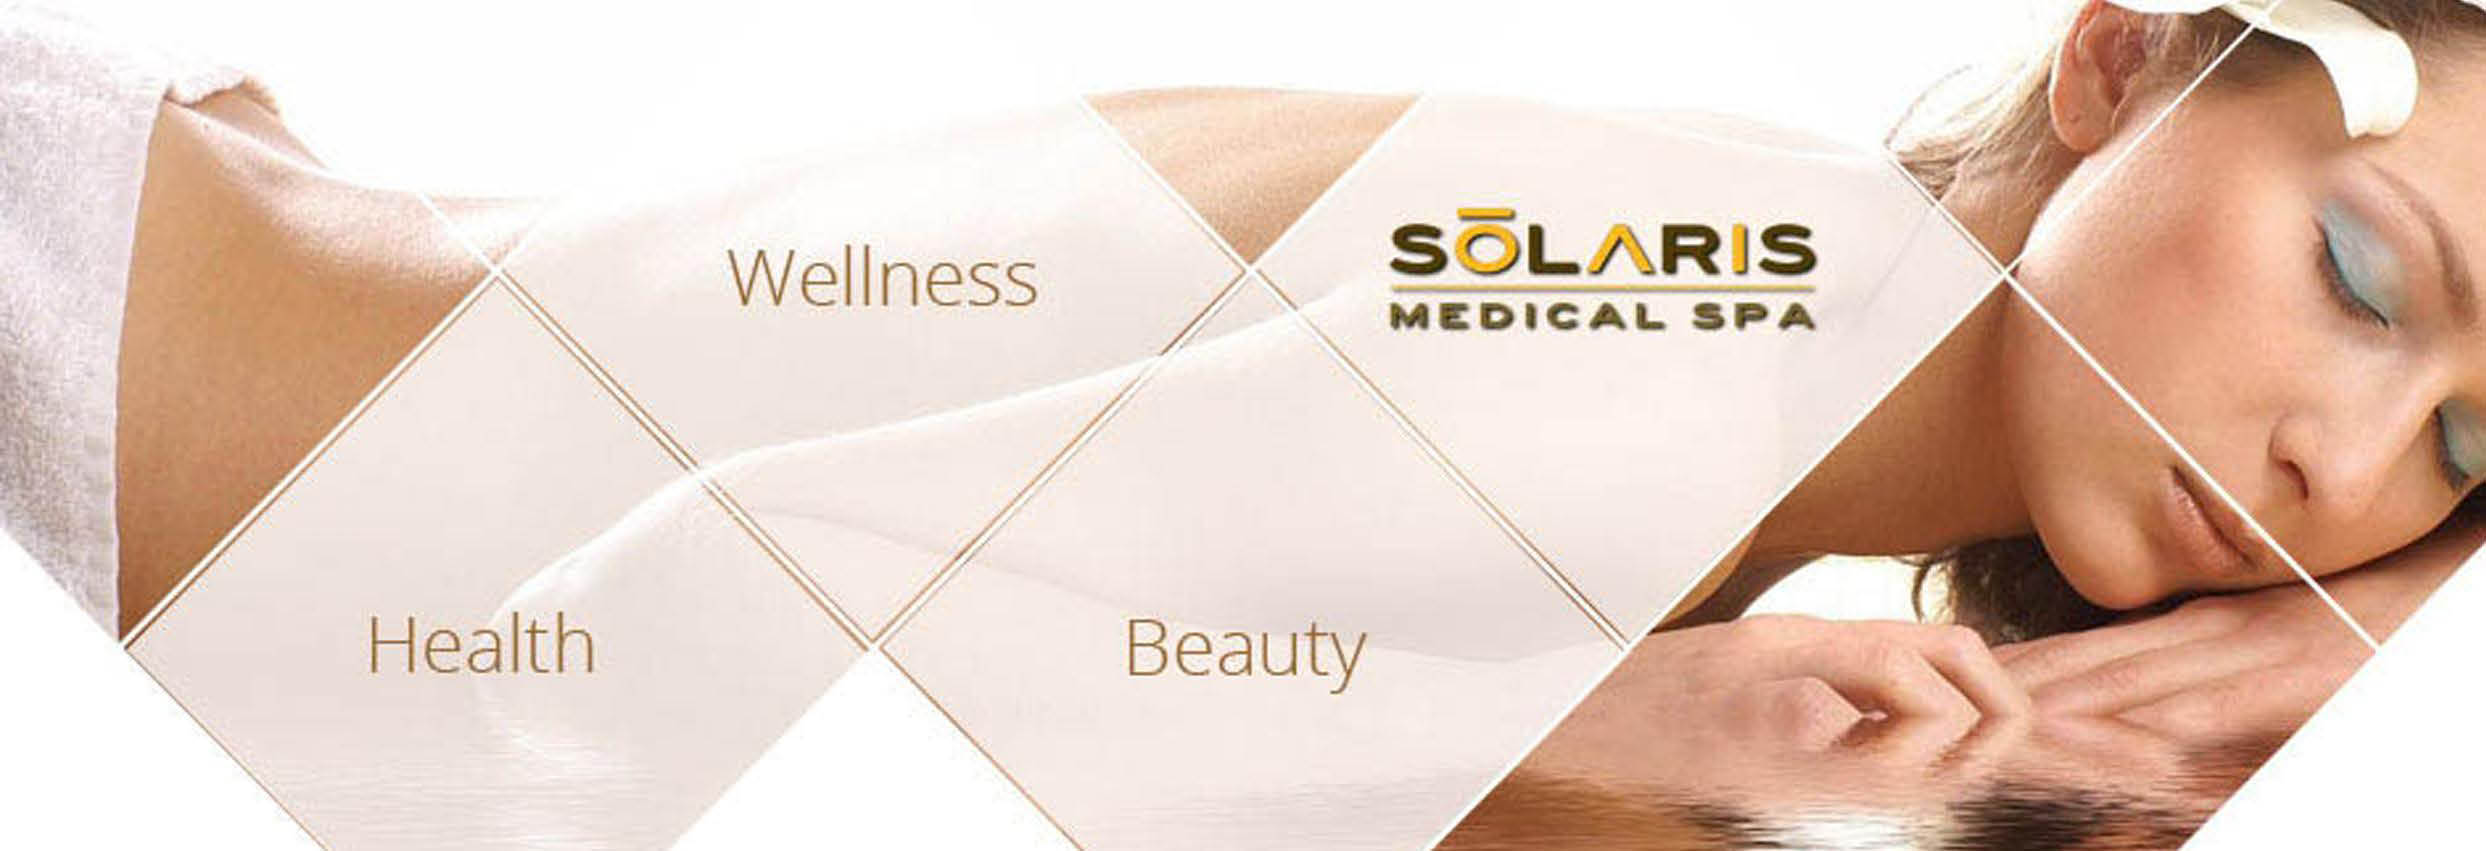 Solaris Medical Spa located in Mequon, WI skin care, anti-aging & weight loss wellness spa banner